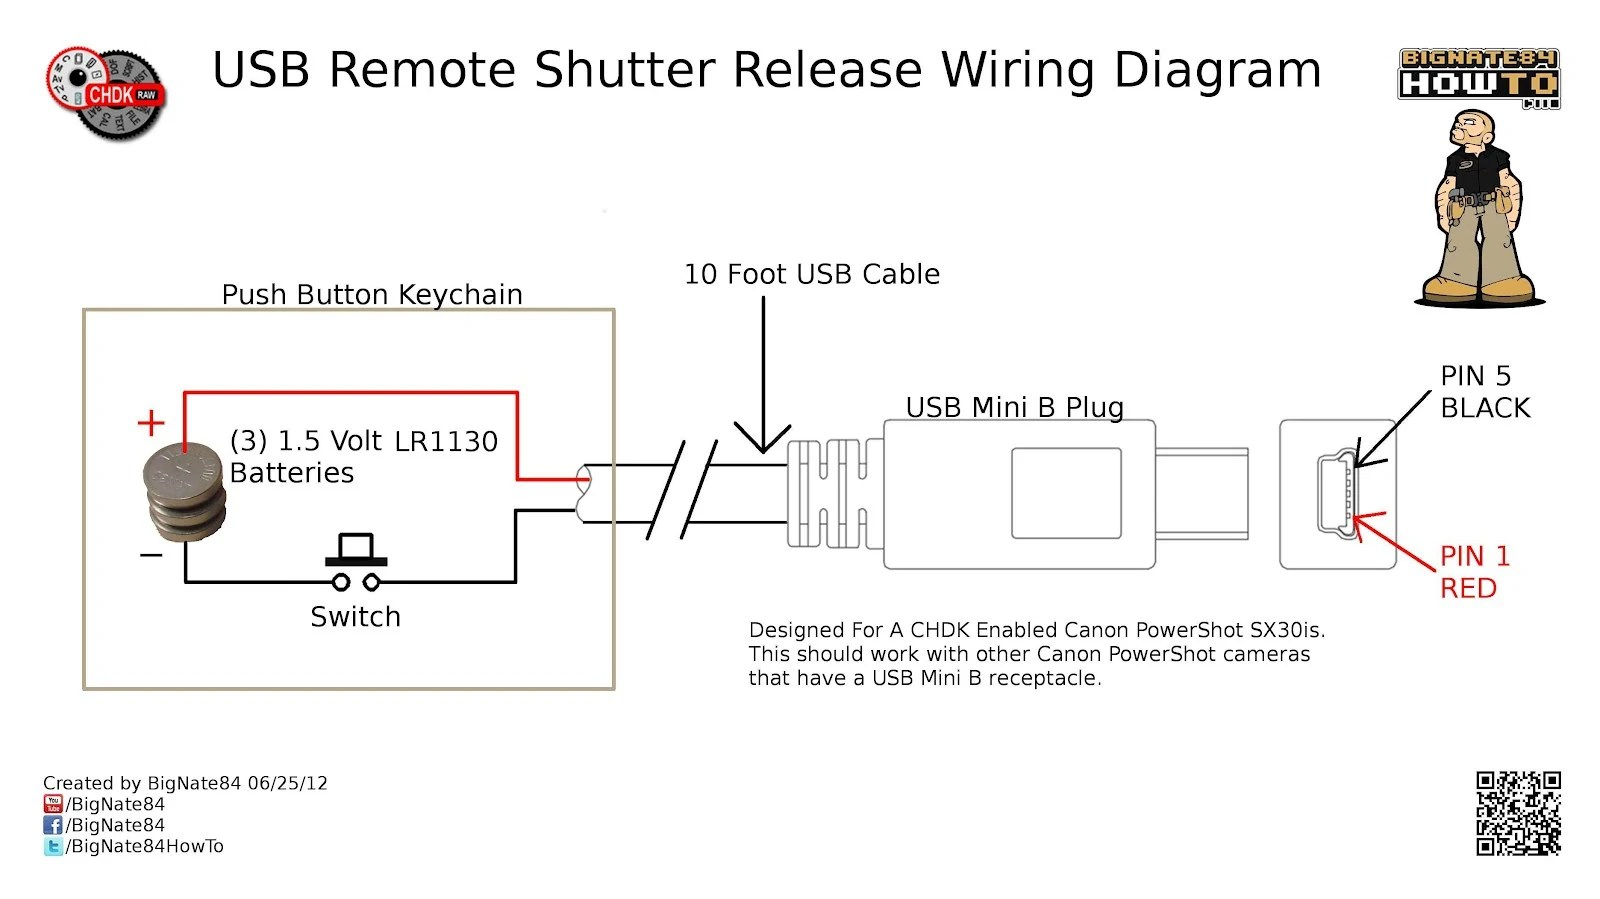 hight resolution of 0001 usb remote shutter wiring diagram 1 jpeg